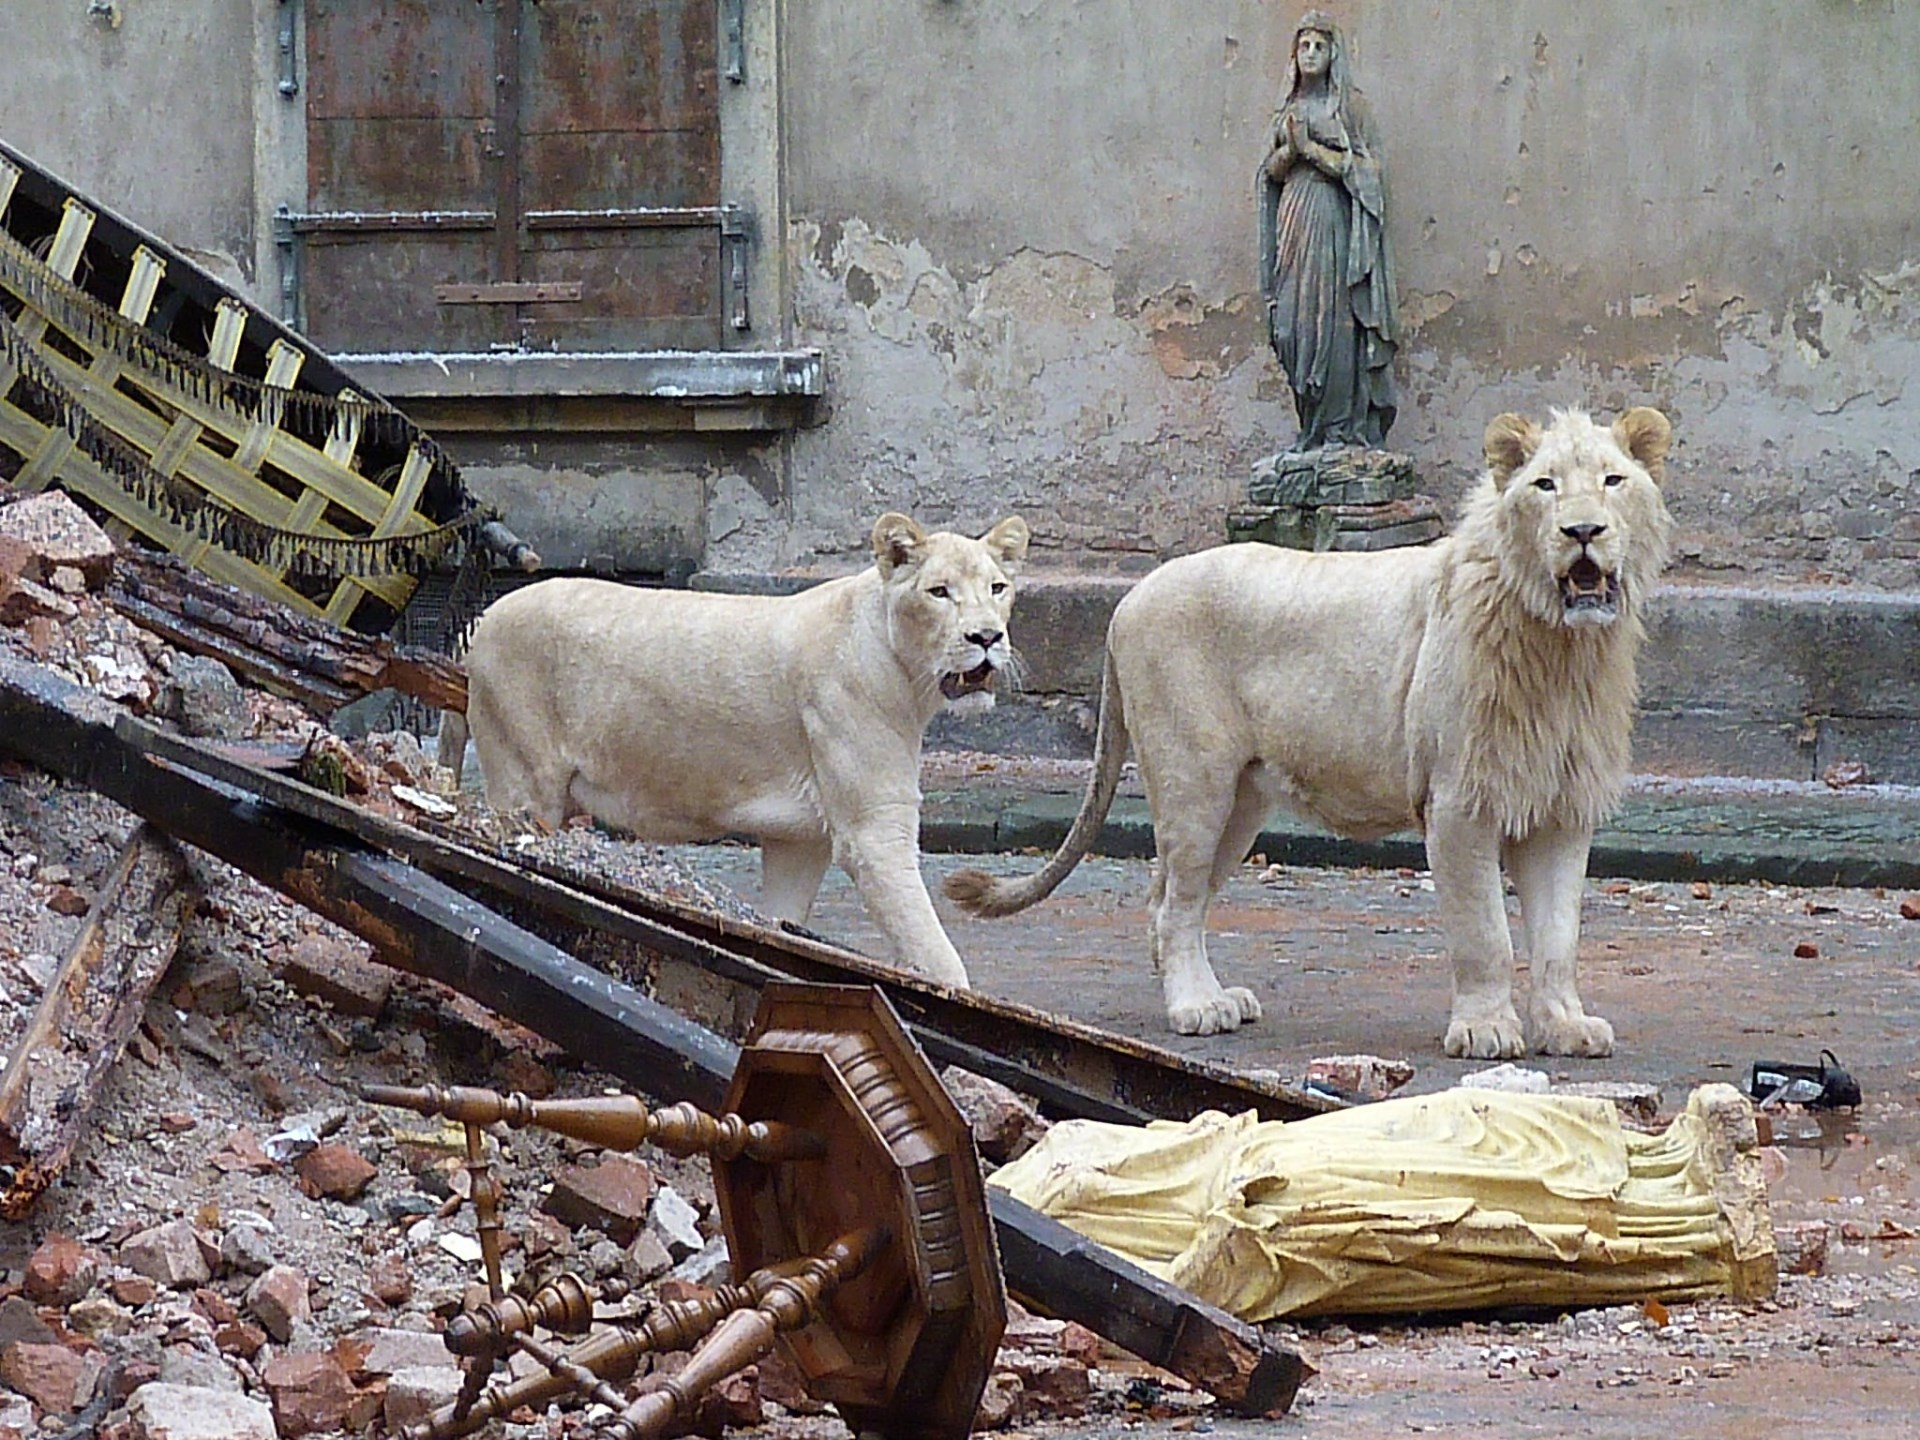 animals exotic czech team place republic dangerous filming lions hundred trained prepared ludvik took four than